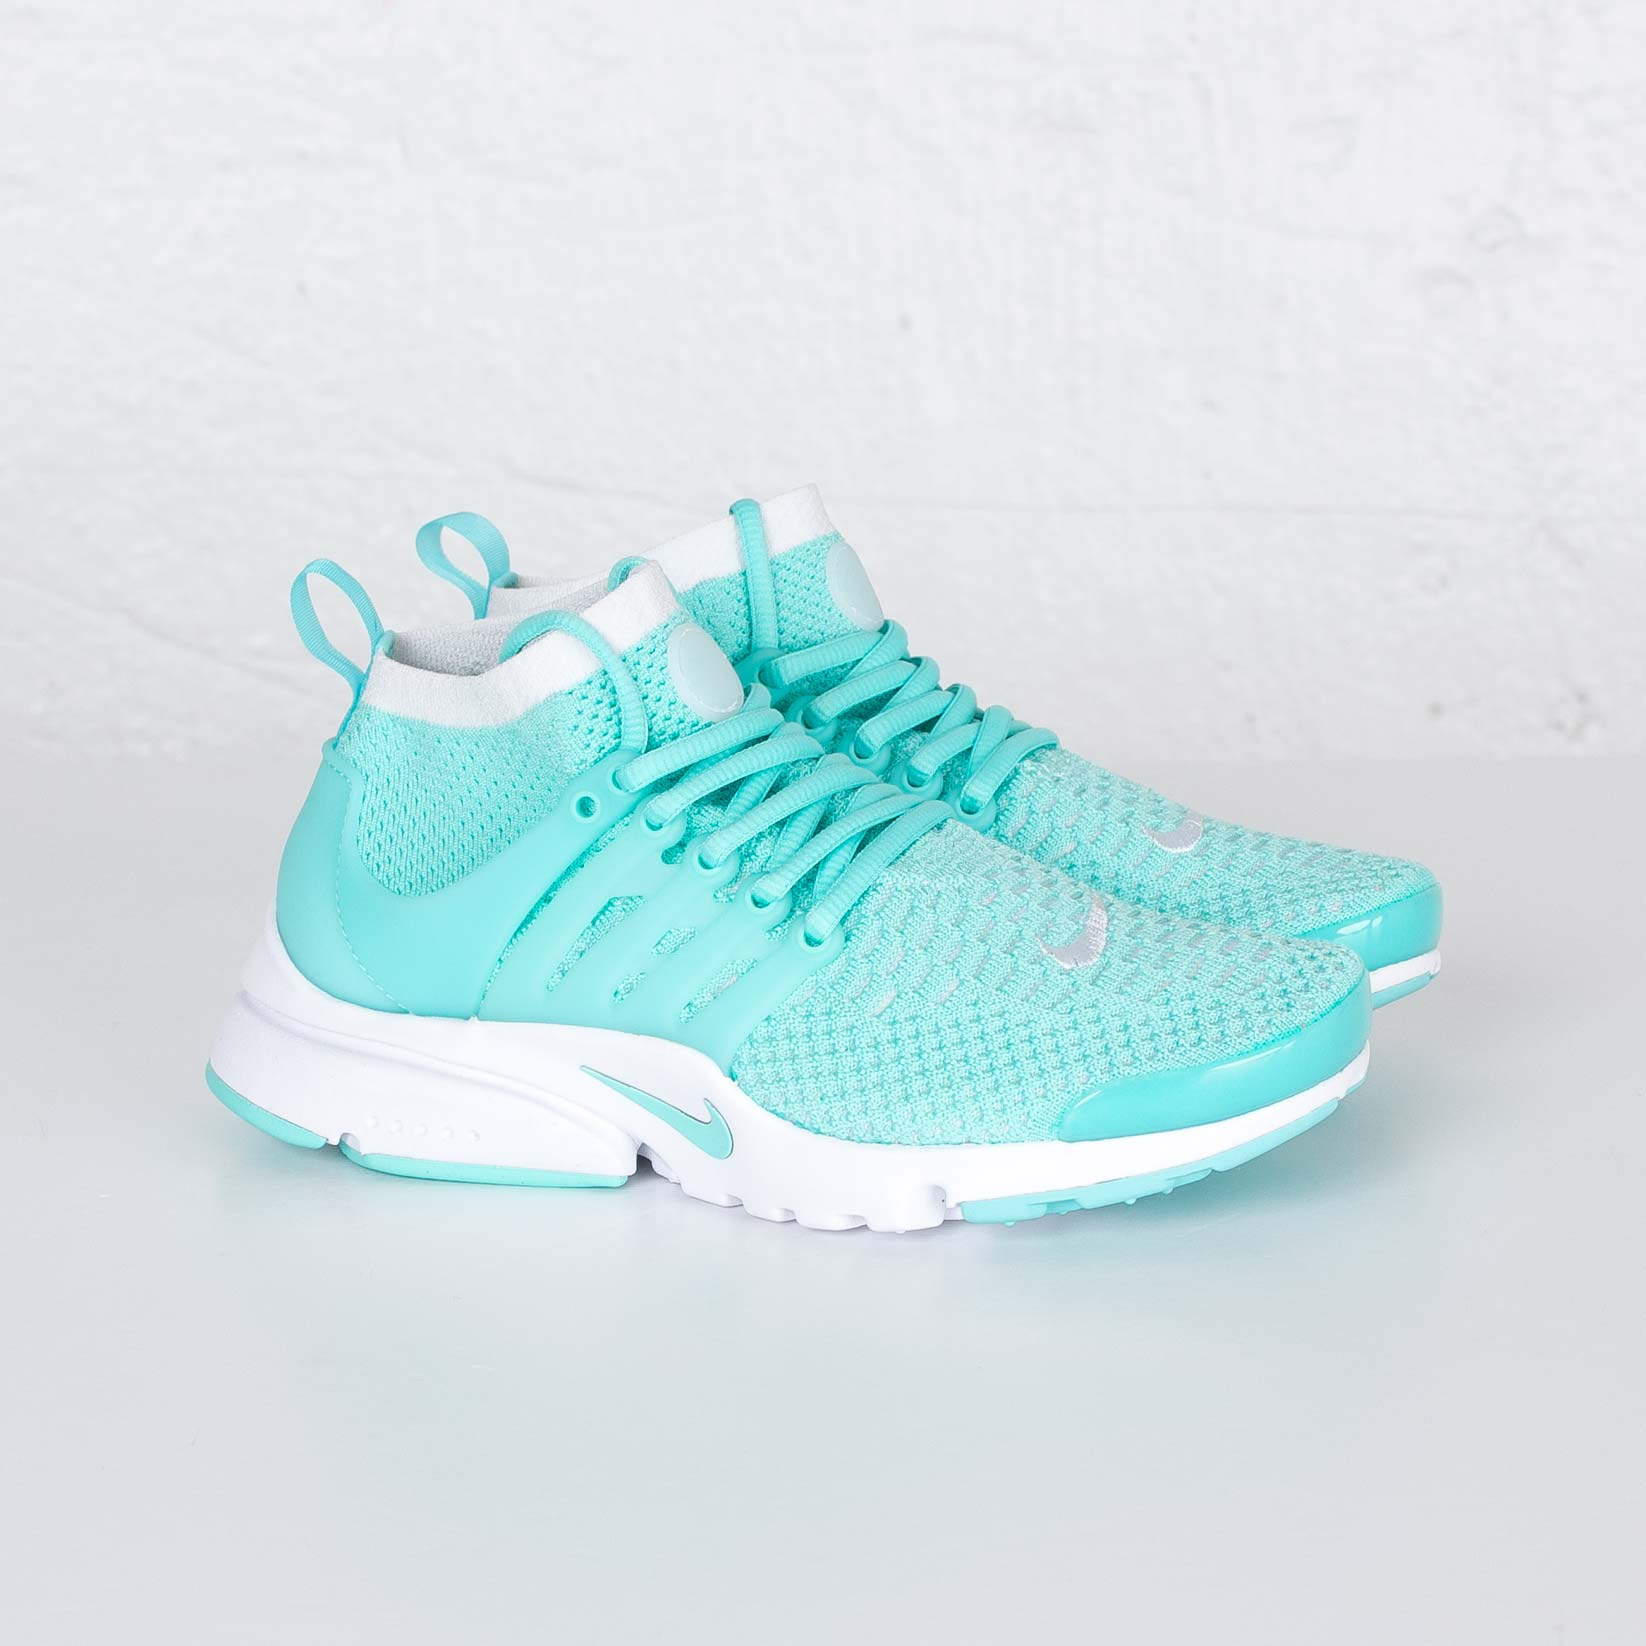 Nike Wmns Nike Air Max Thea 599409 402 Sneakersnstuff